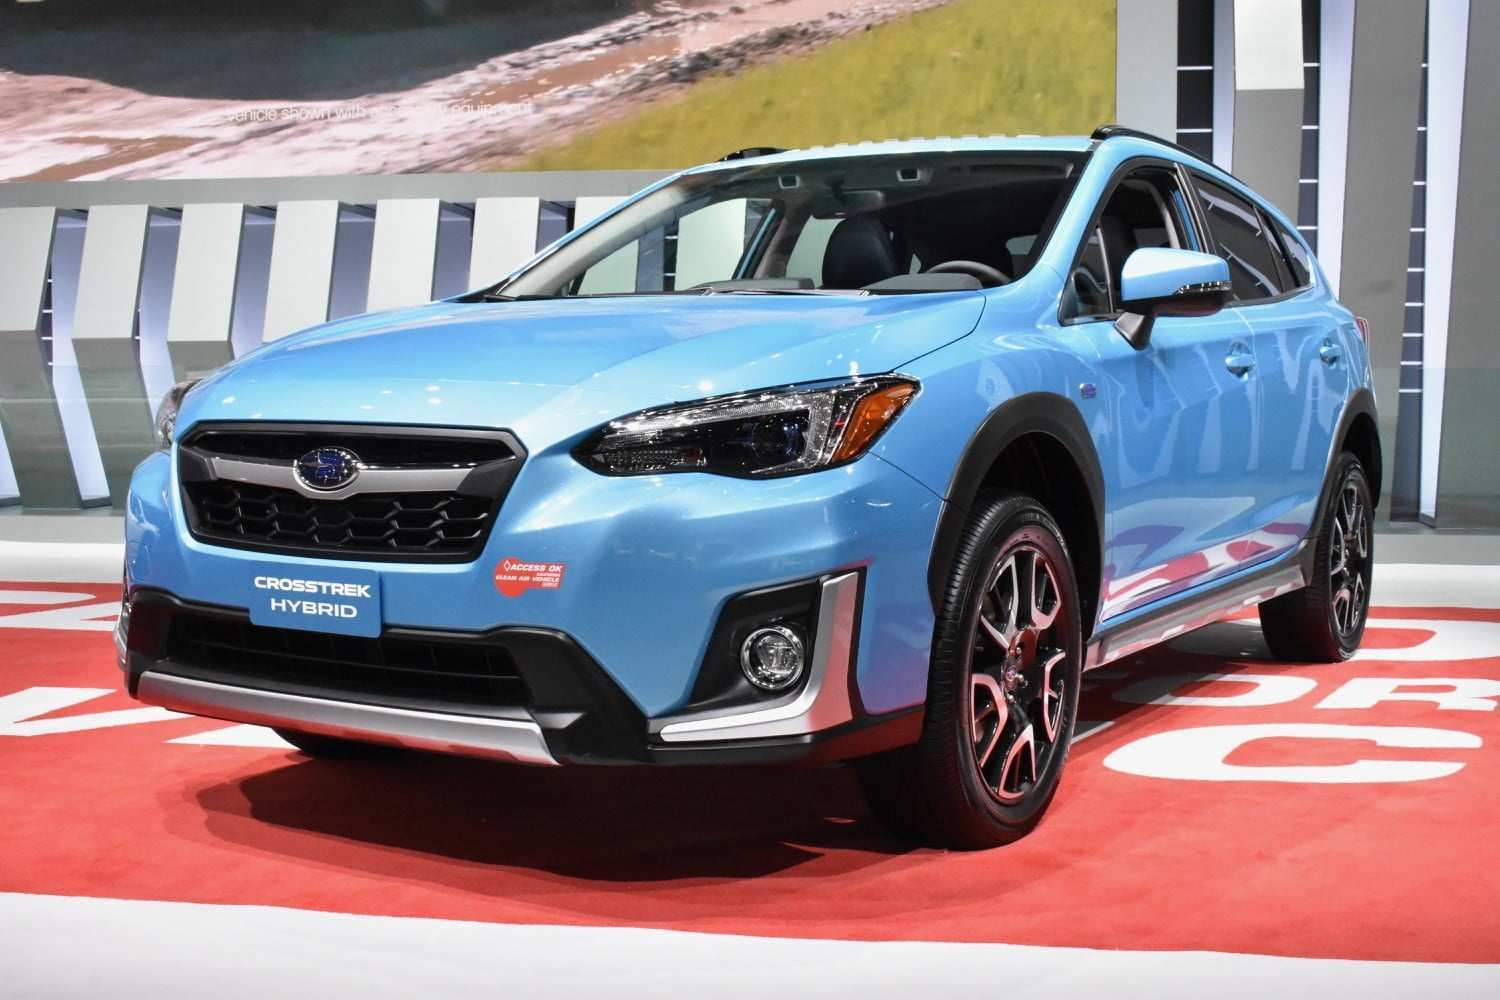 44 Concept of Subaru Plug In Hybrid 2020 Spesification by Subaru Plug In Hybrid 2020